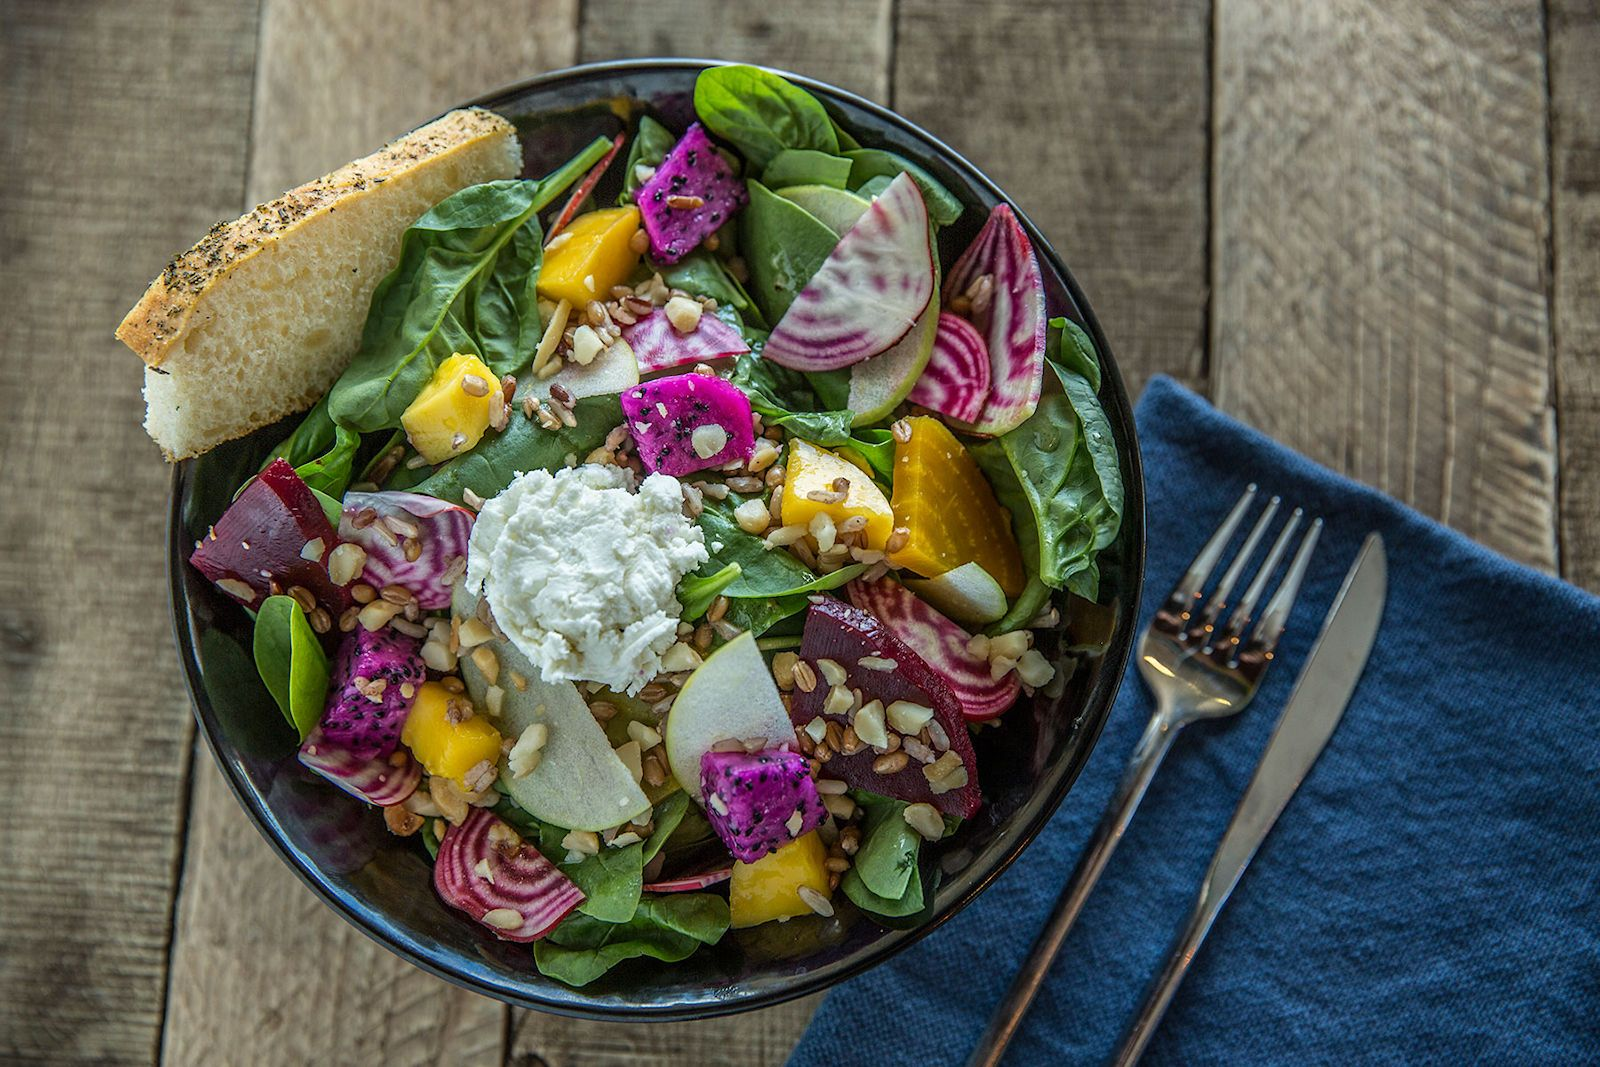 Fork & Salad, a health-focused eatery with a mission to make farm-to-table cuisine accessible to the masses, is opening its second corporate location on Friday, June 1 in the Pu'un?n? Shopping Center in Kahului, Maui.